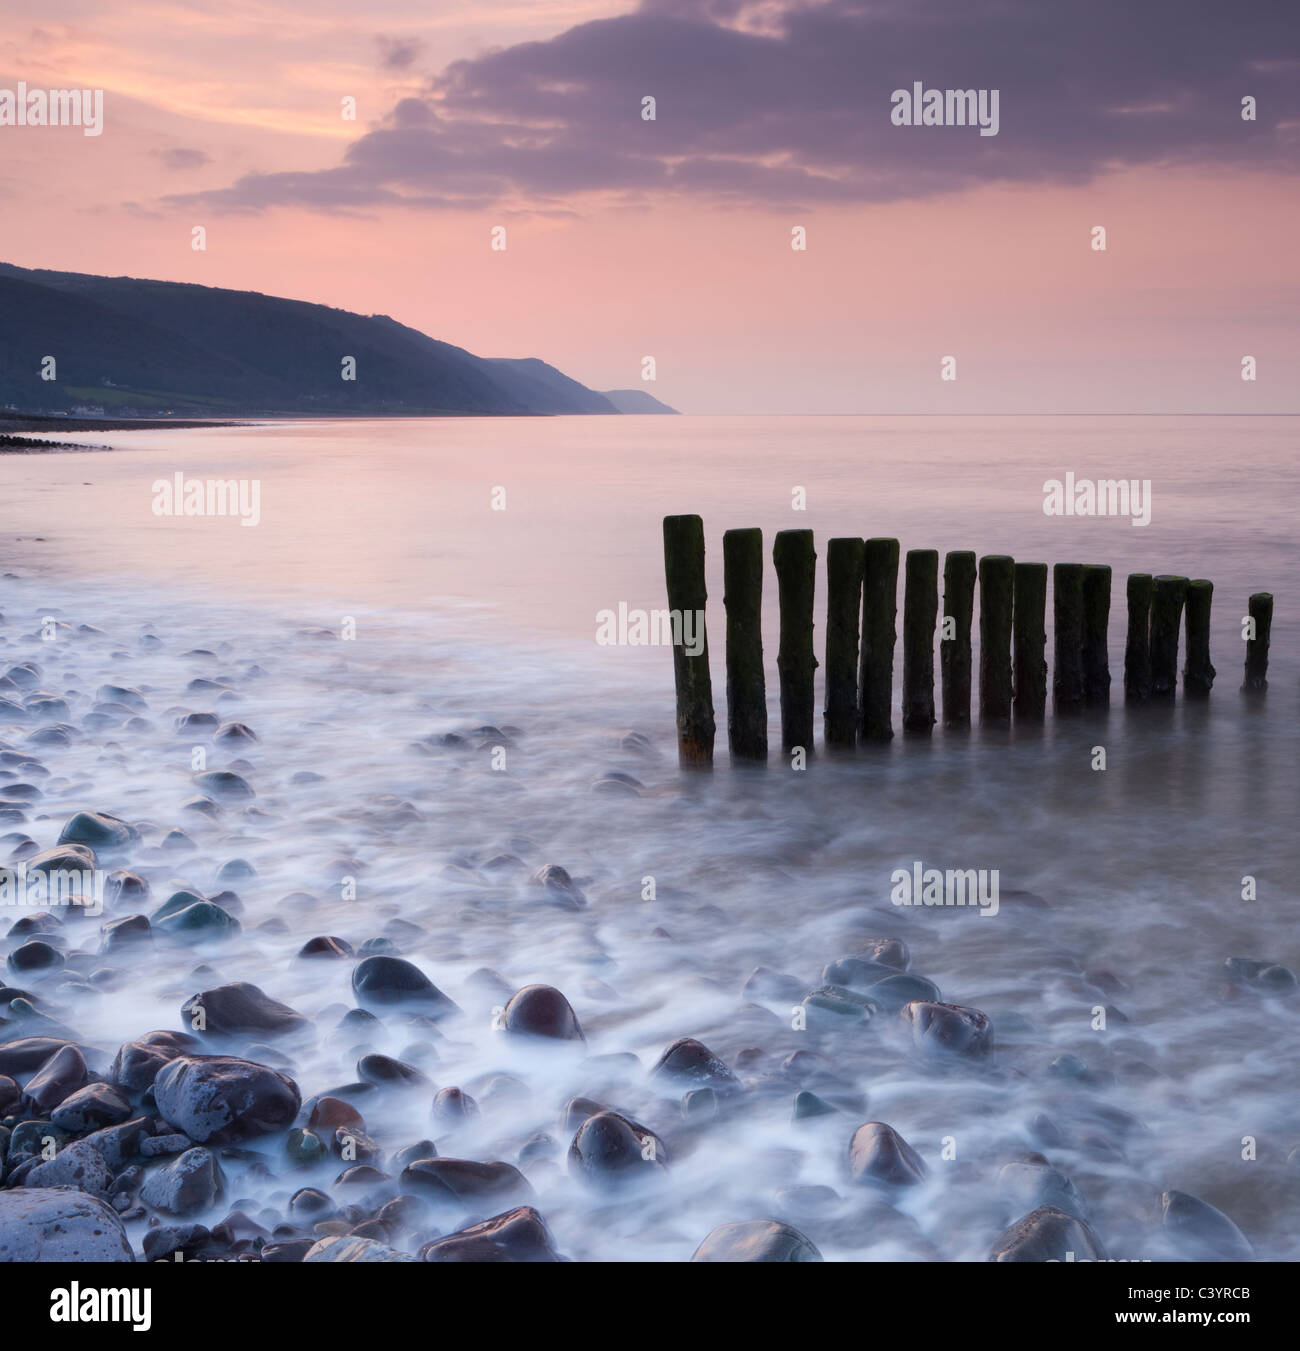 Wooden groynes on Bossington Beach at sunset, Exmoor National Park, Somerset, England. Spring (March) 2011. - Stock Image